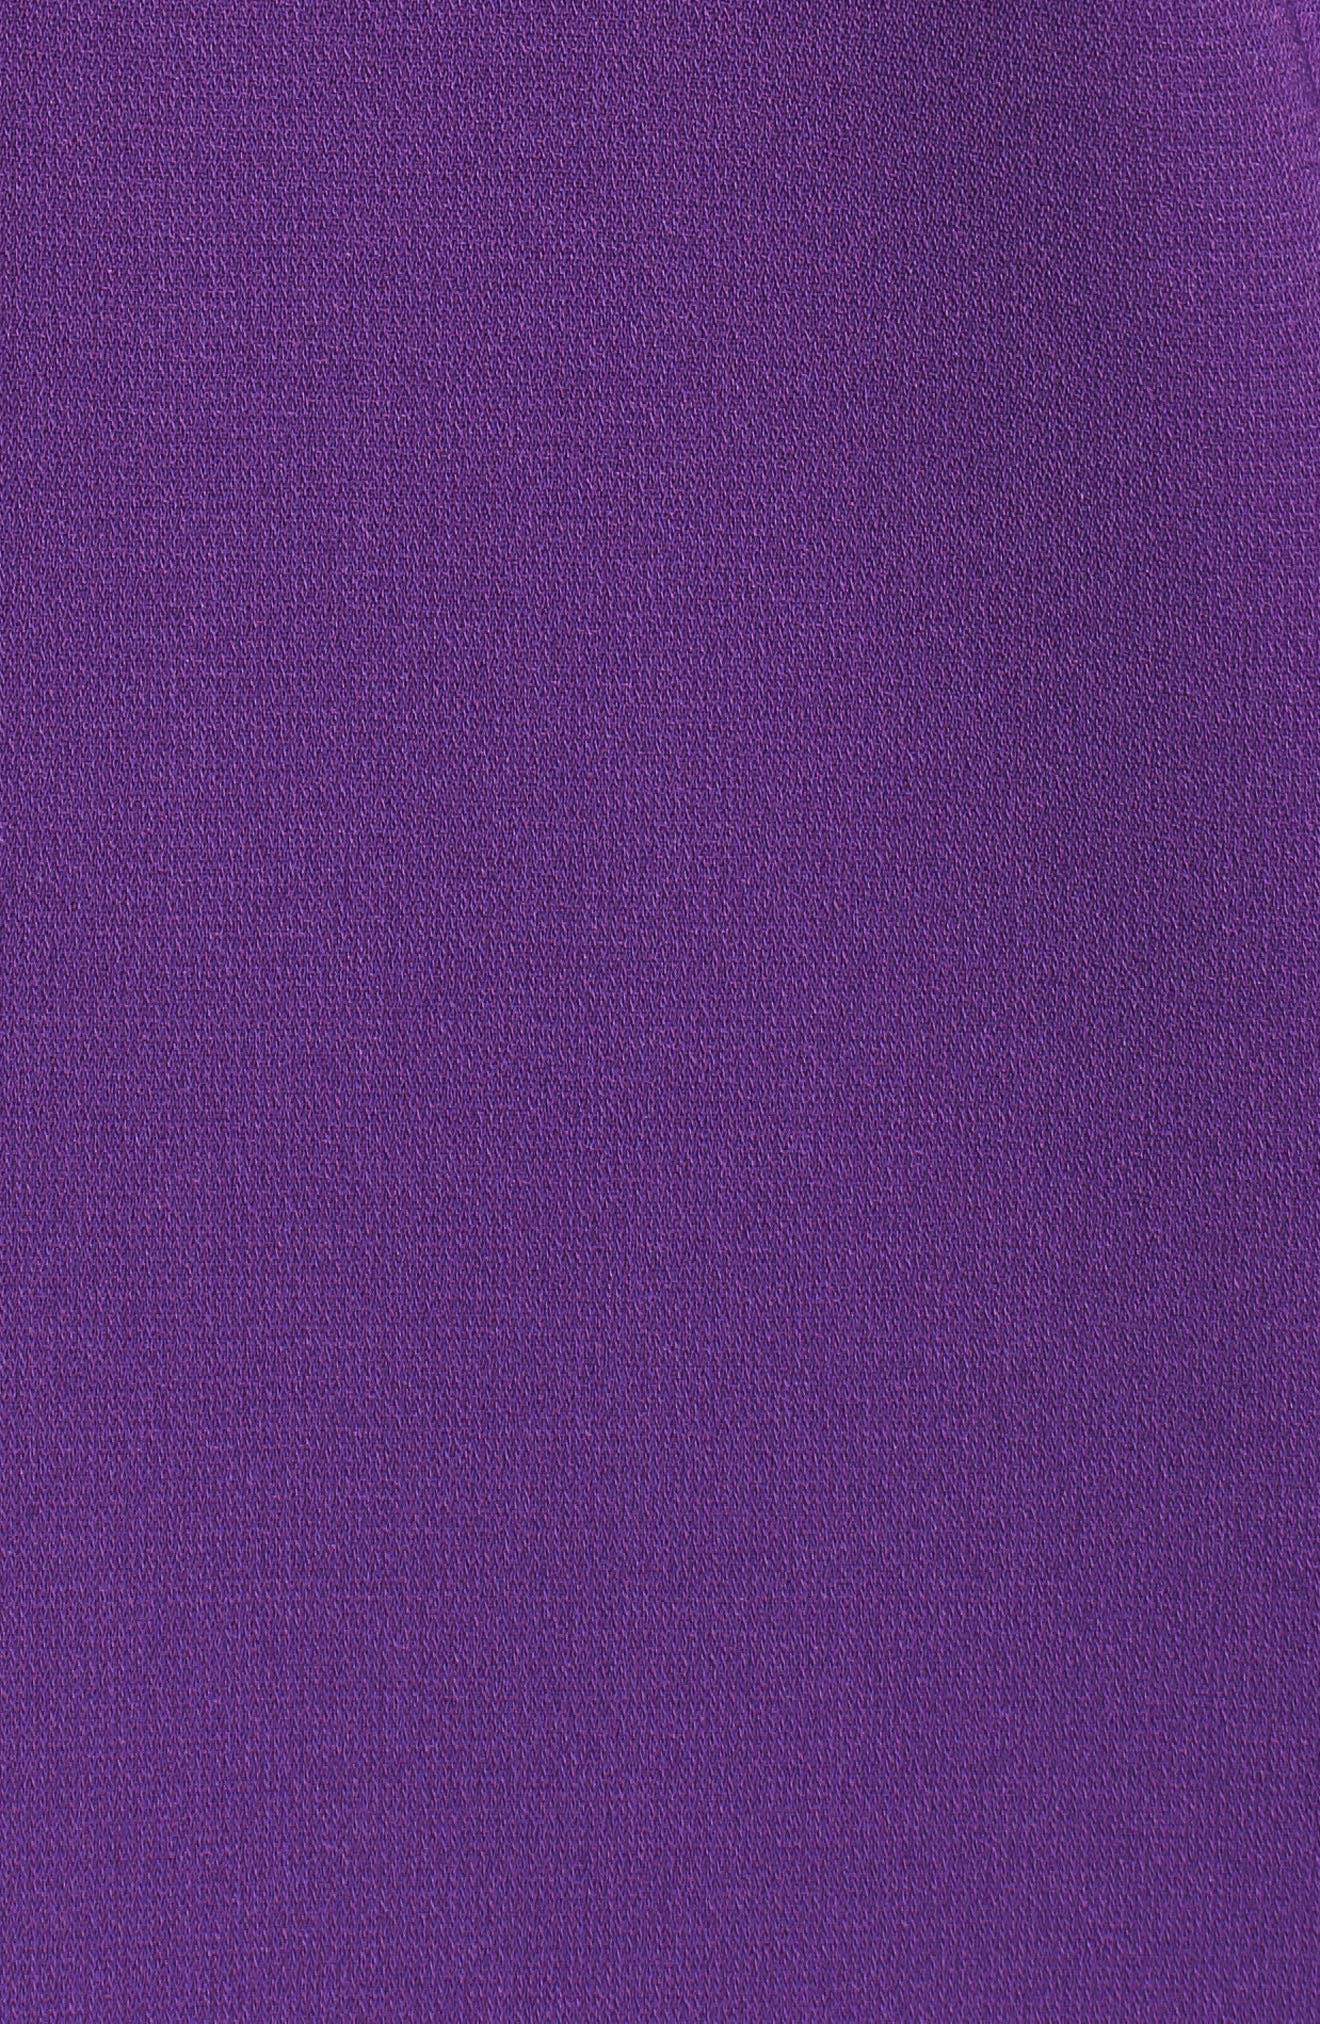 Oversize Blazer,                             Alternate thumbnail 8, color,                             PURPLE MAGIC